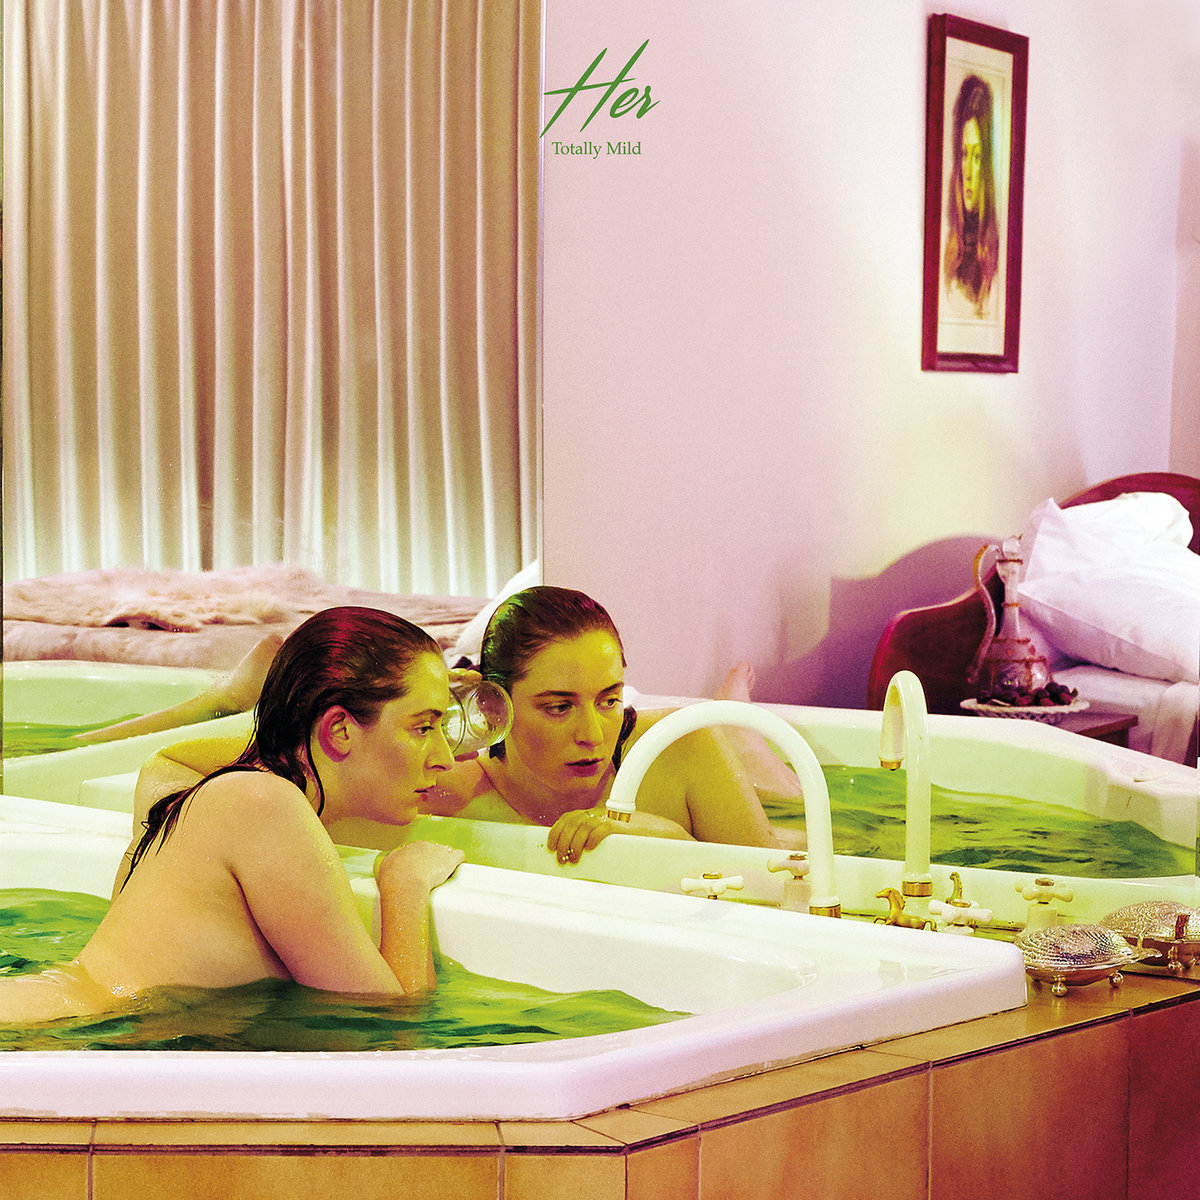 Northern Transmissions' review of 'Her' by Totally Mild